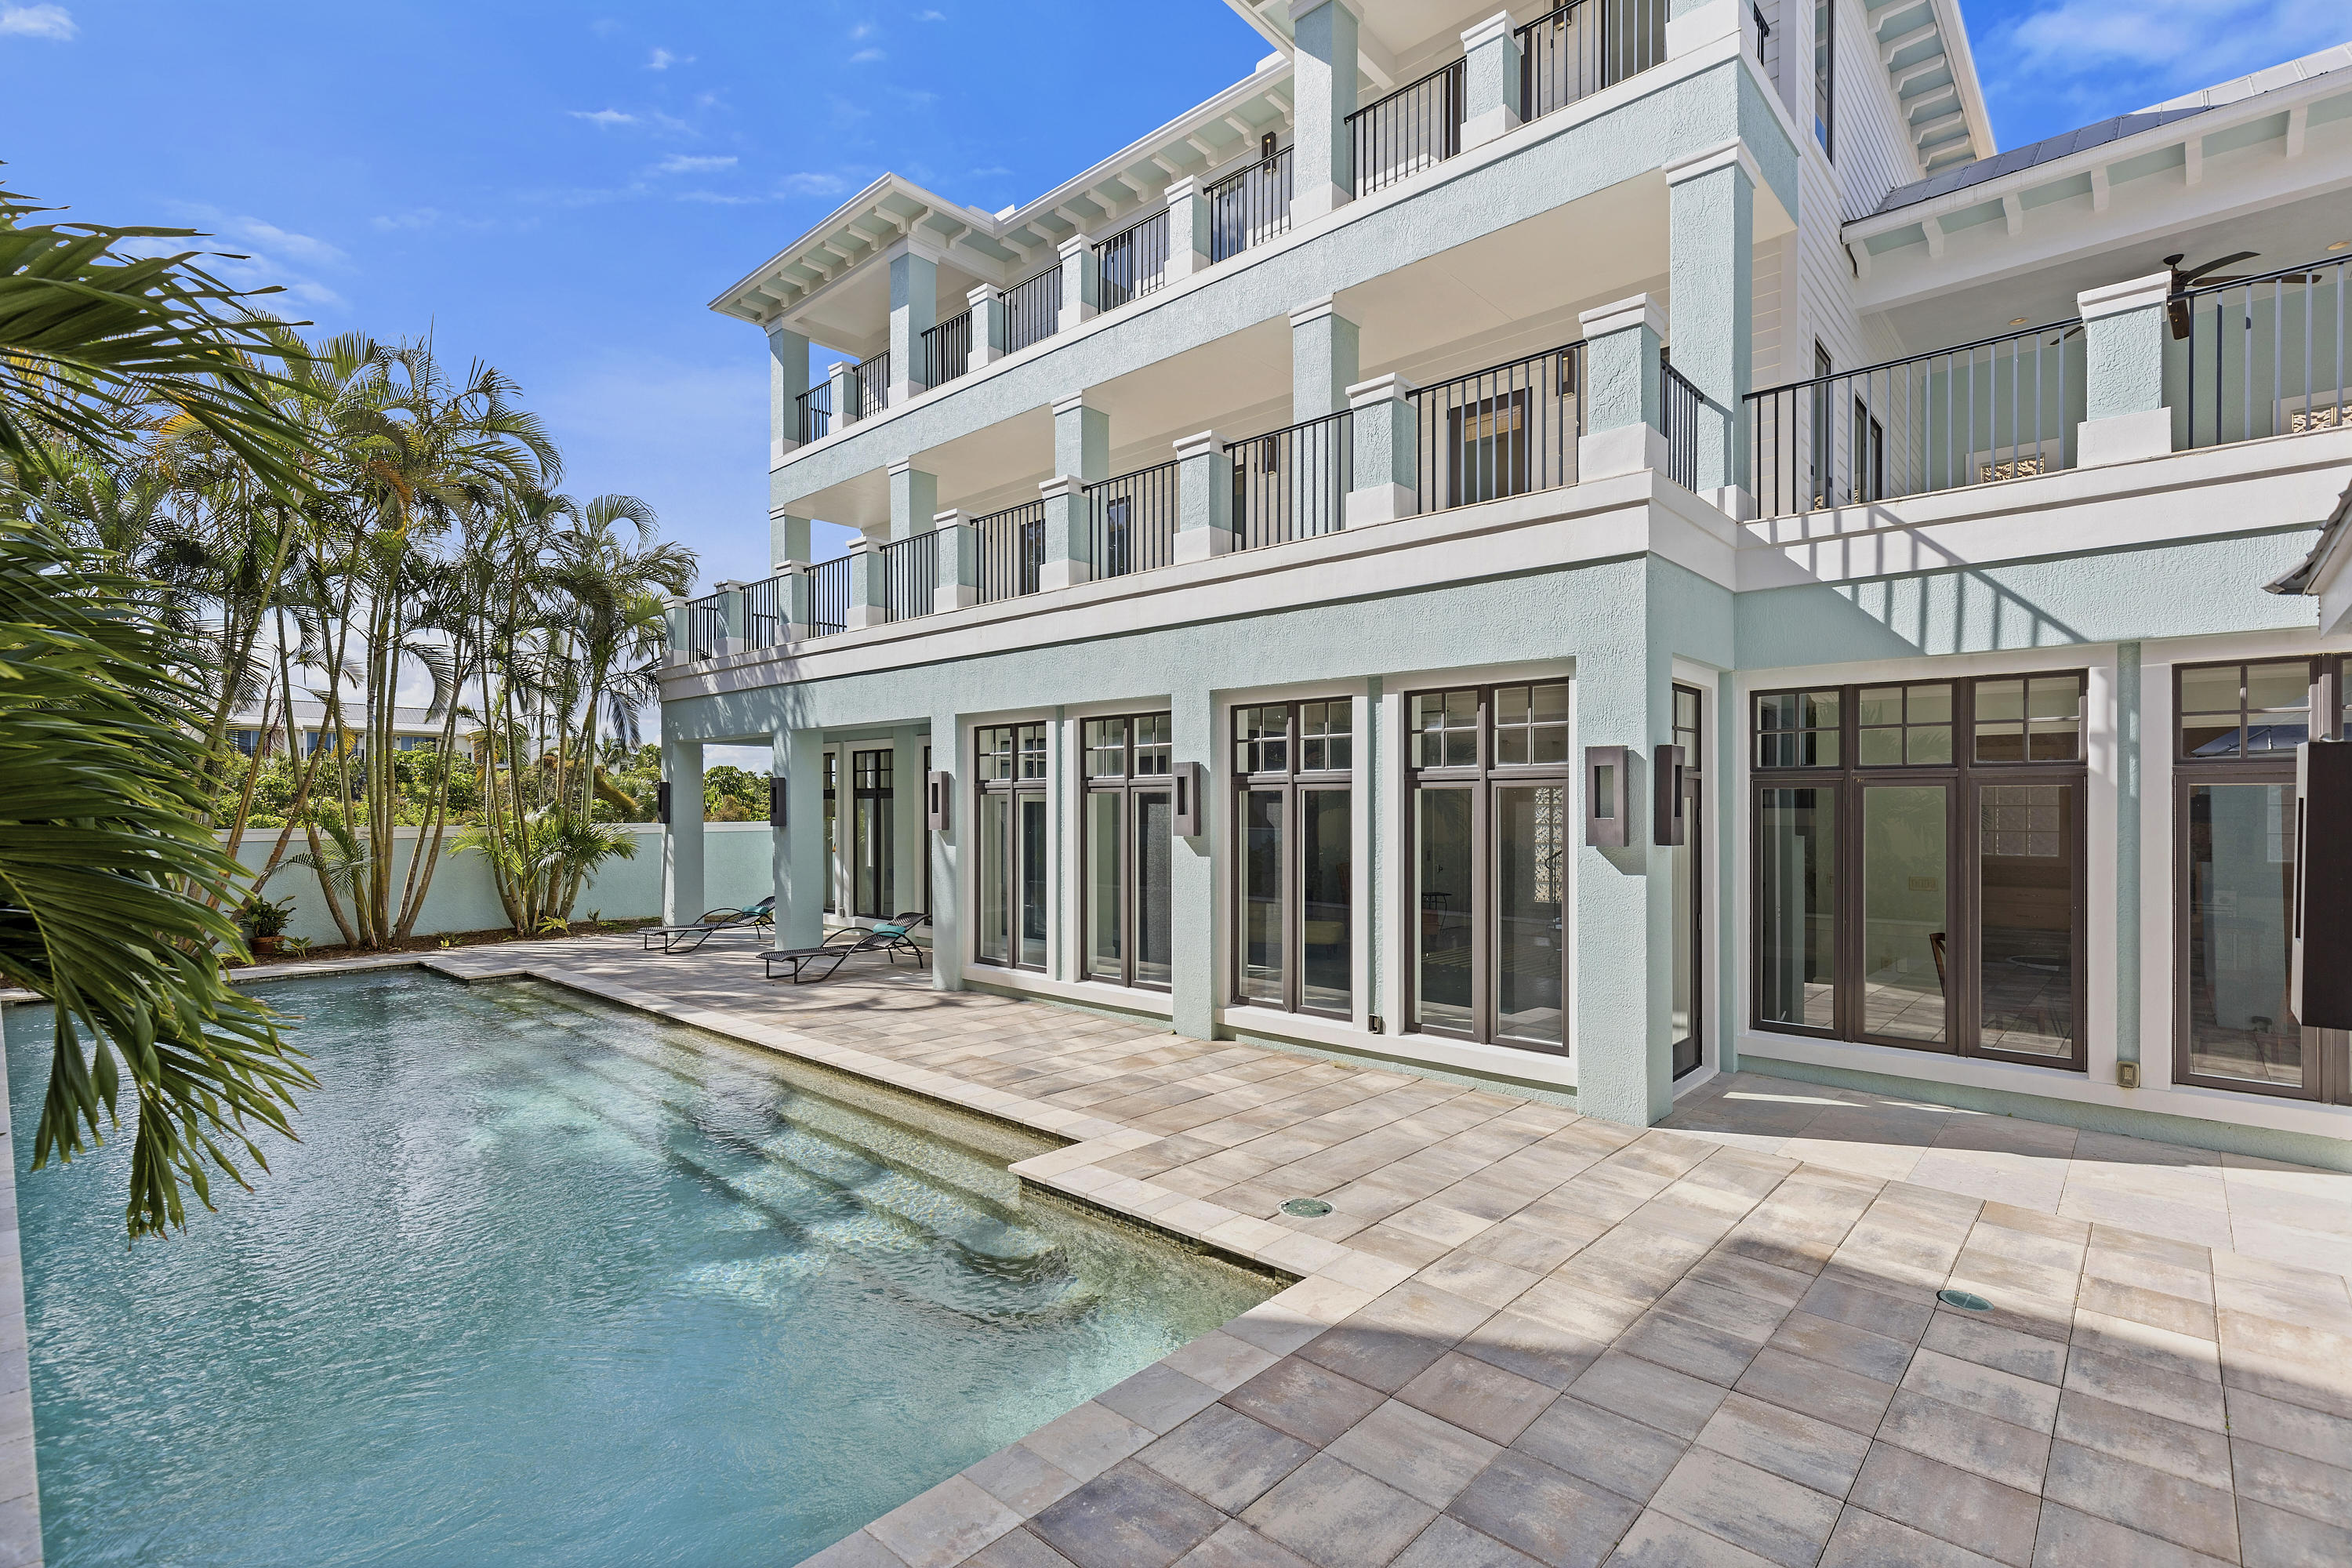 New Home for sale at 470 Old Towne Lane in Juno Beach